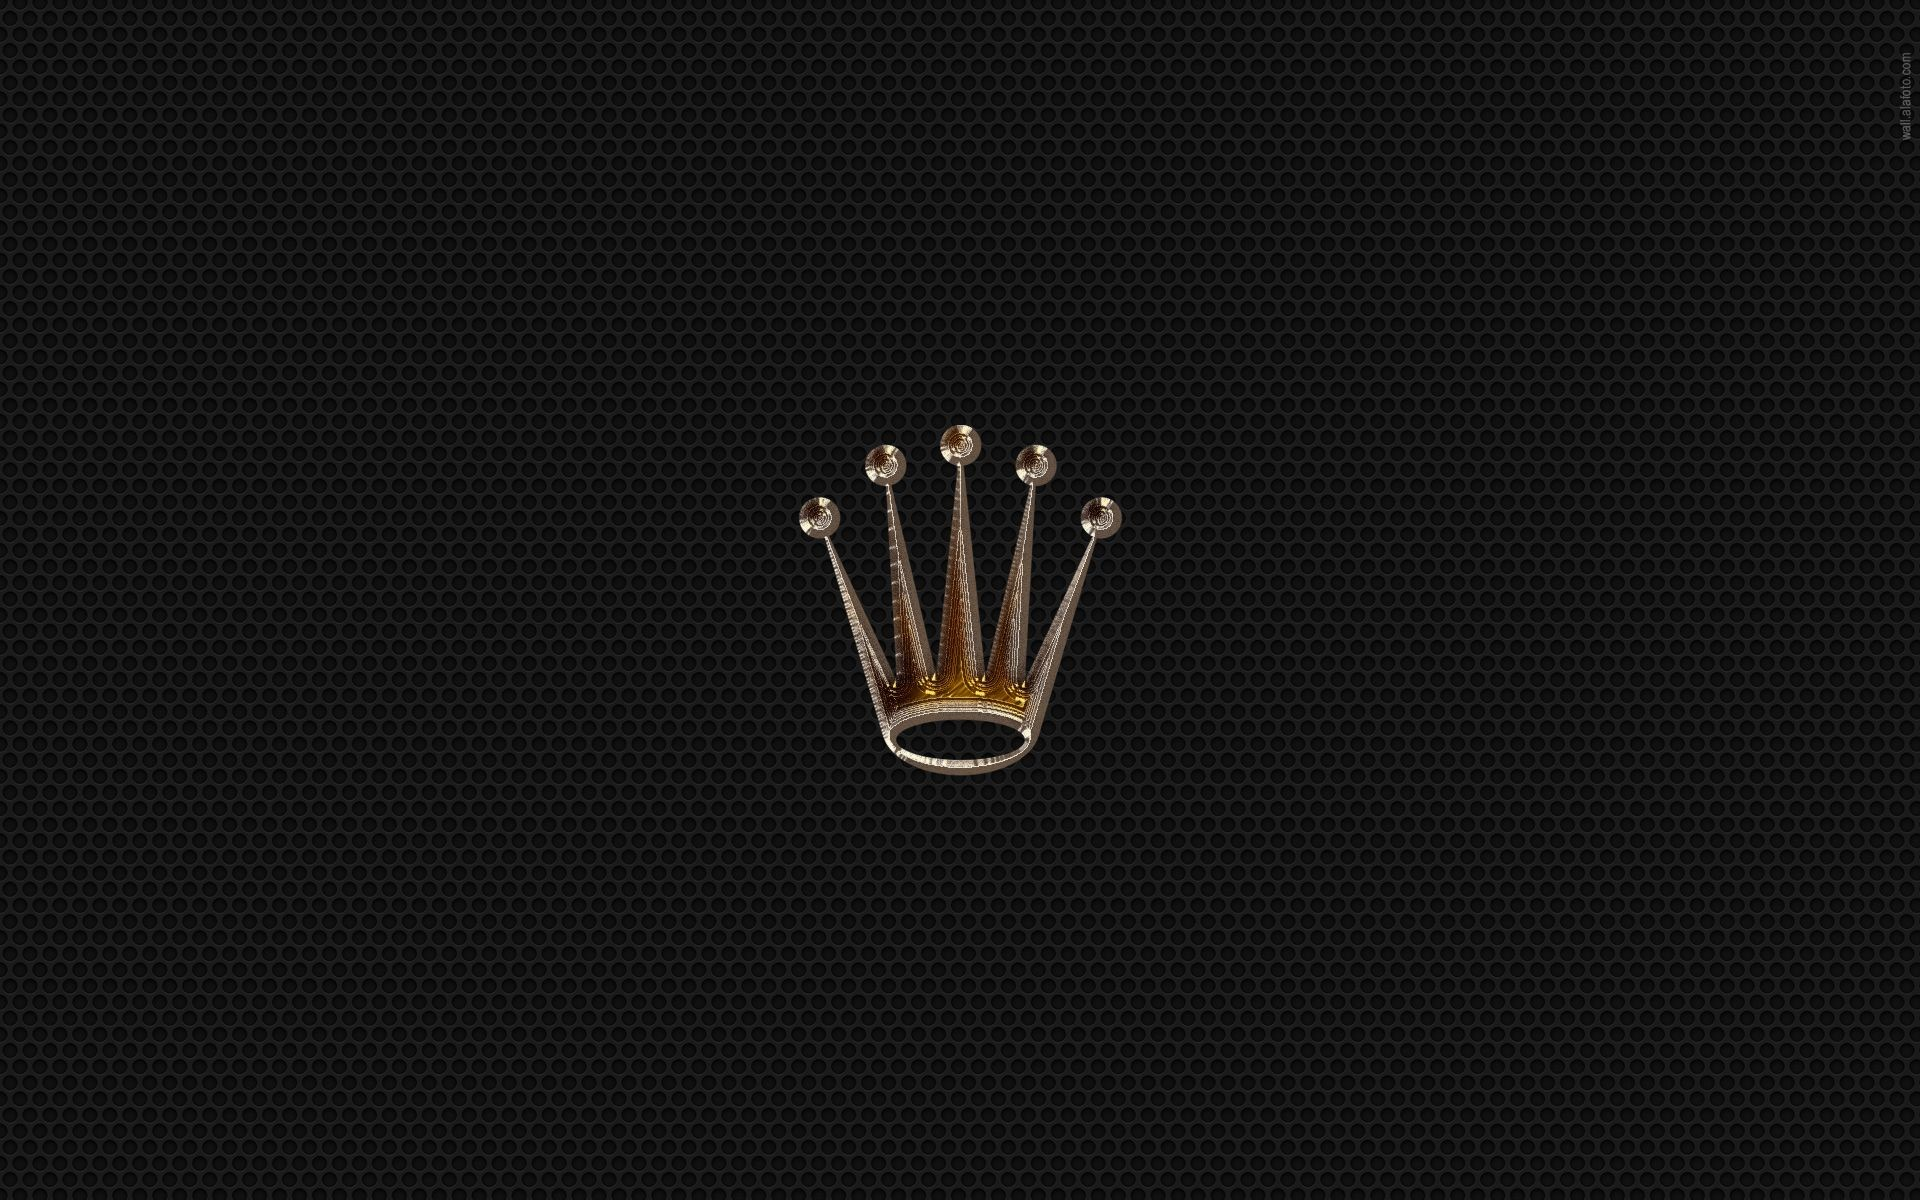 Res: 1920x1200, Rolex Wallpapers, Gallery of 32 Rolex Backgrounds, Wallpapers .